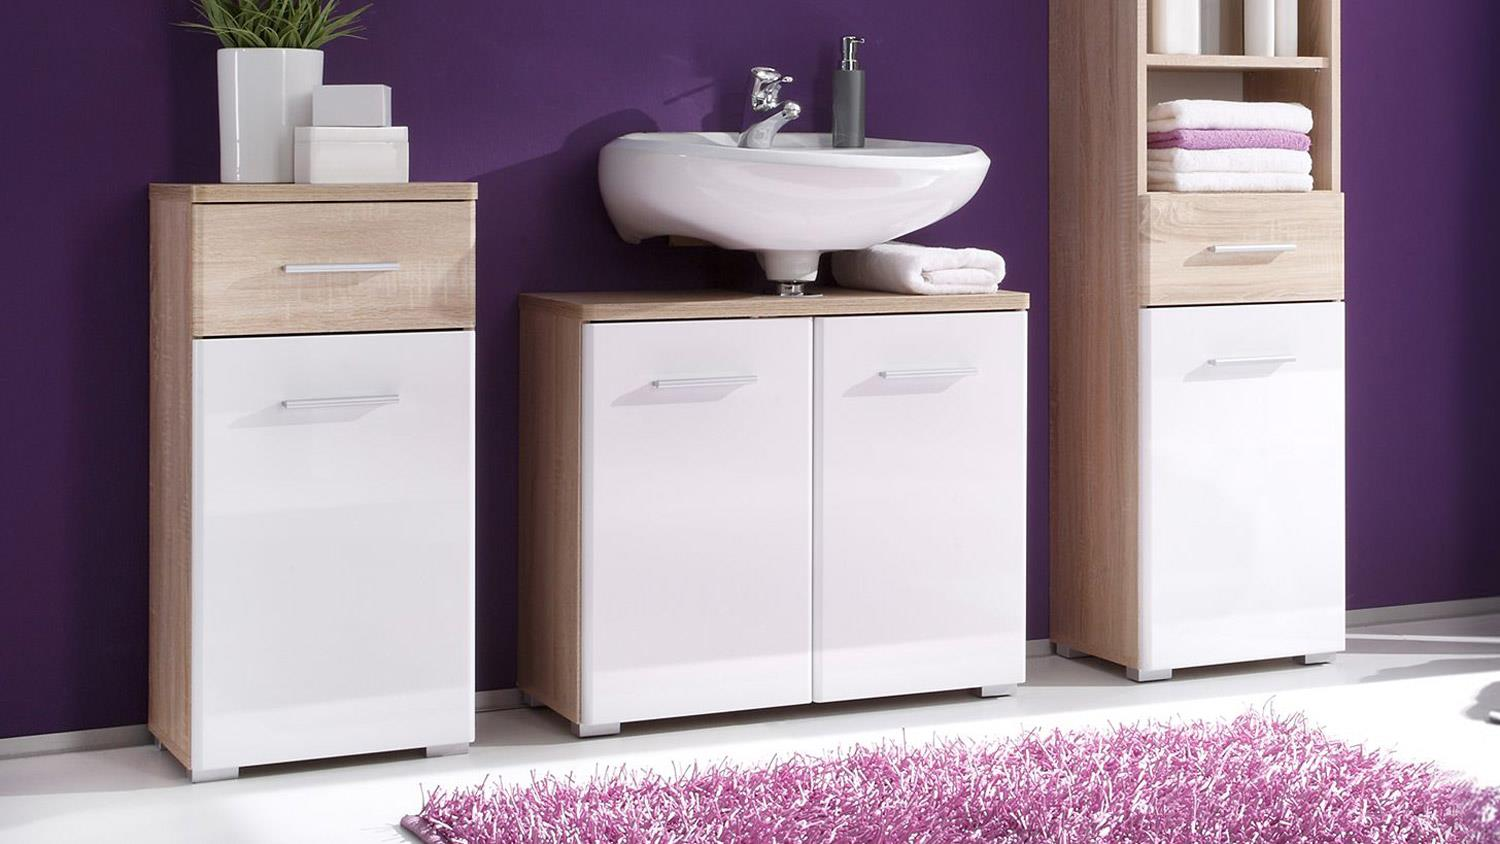 Kommode Im Badezimmer Kommode Bad Wei Good Affordable Kommode Cm Breit Wei Elegant